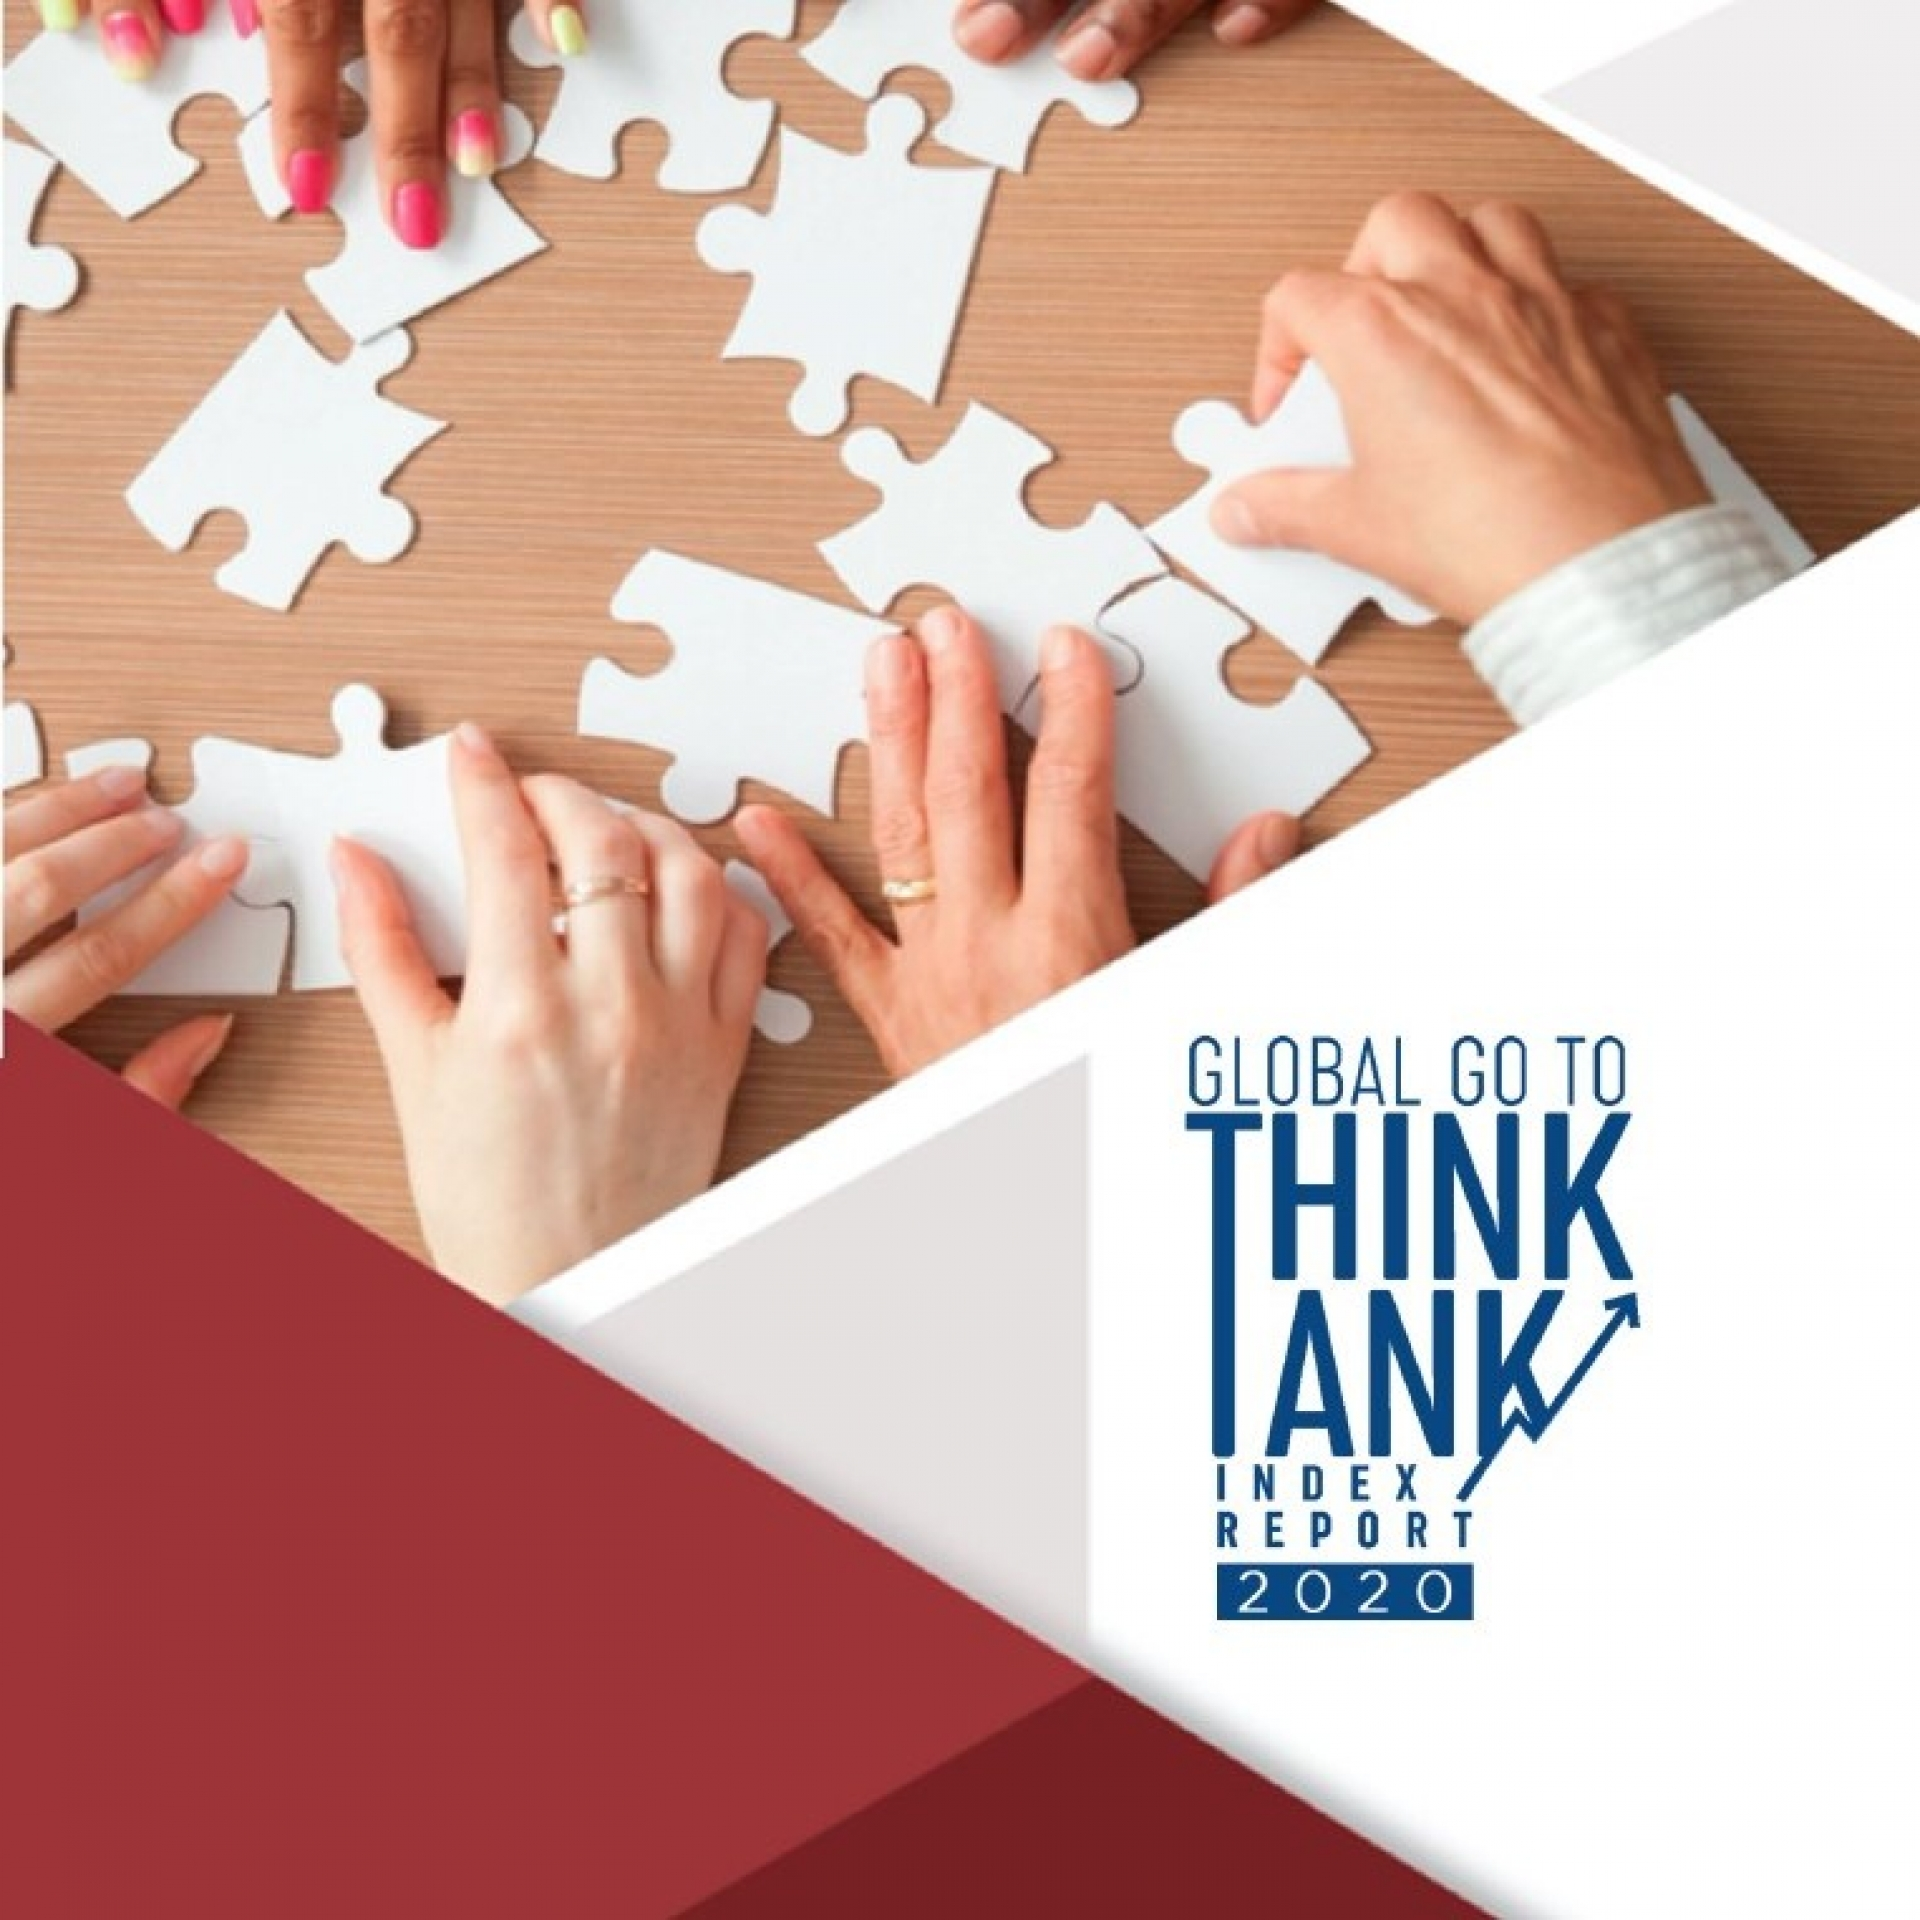 Global Go To Think Tank COVERPAGE SQUARE CROP